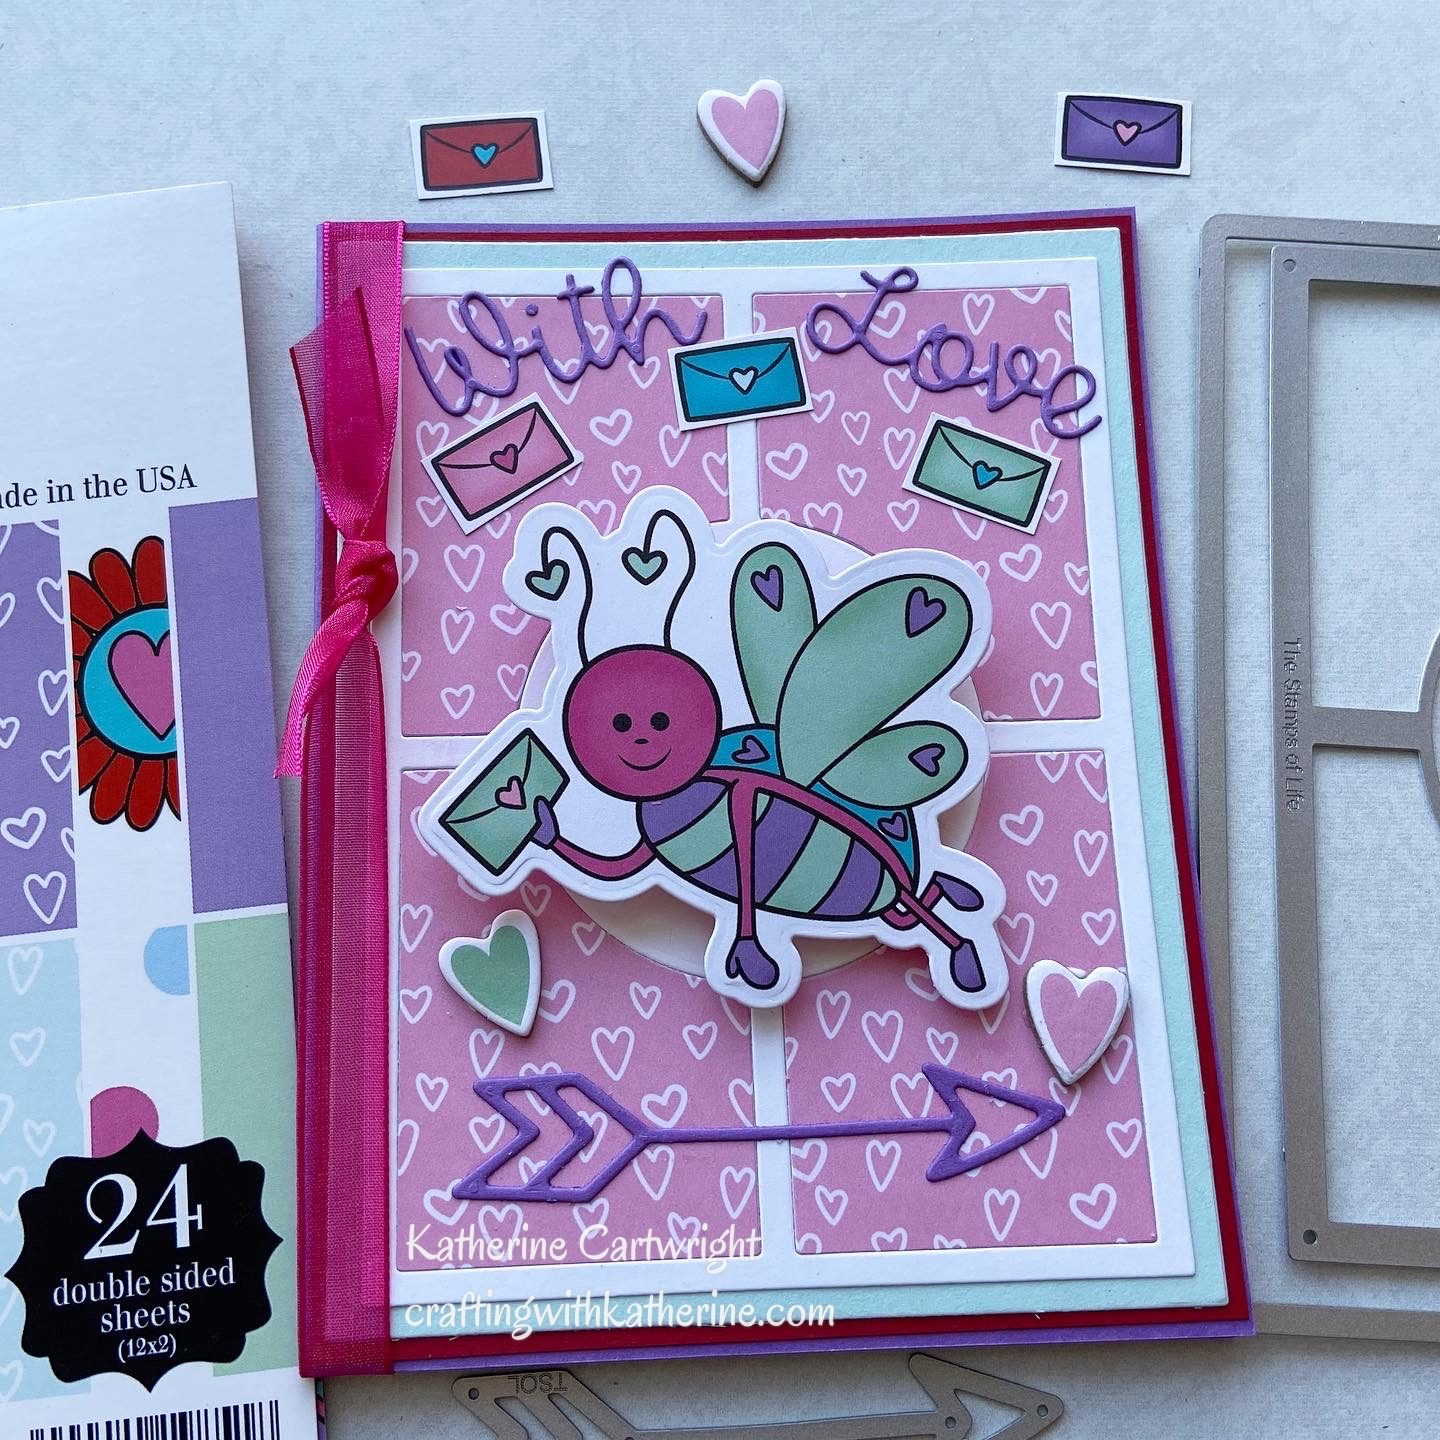 4 Projects from The Stamps of Life Card Kit – With Love